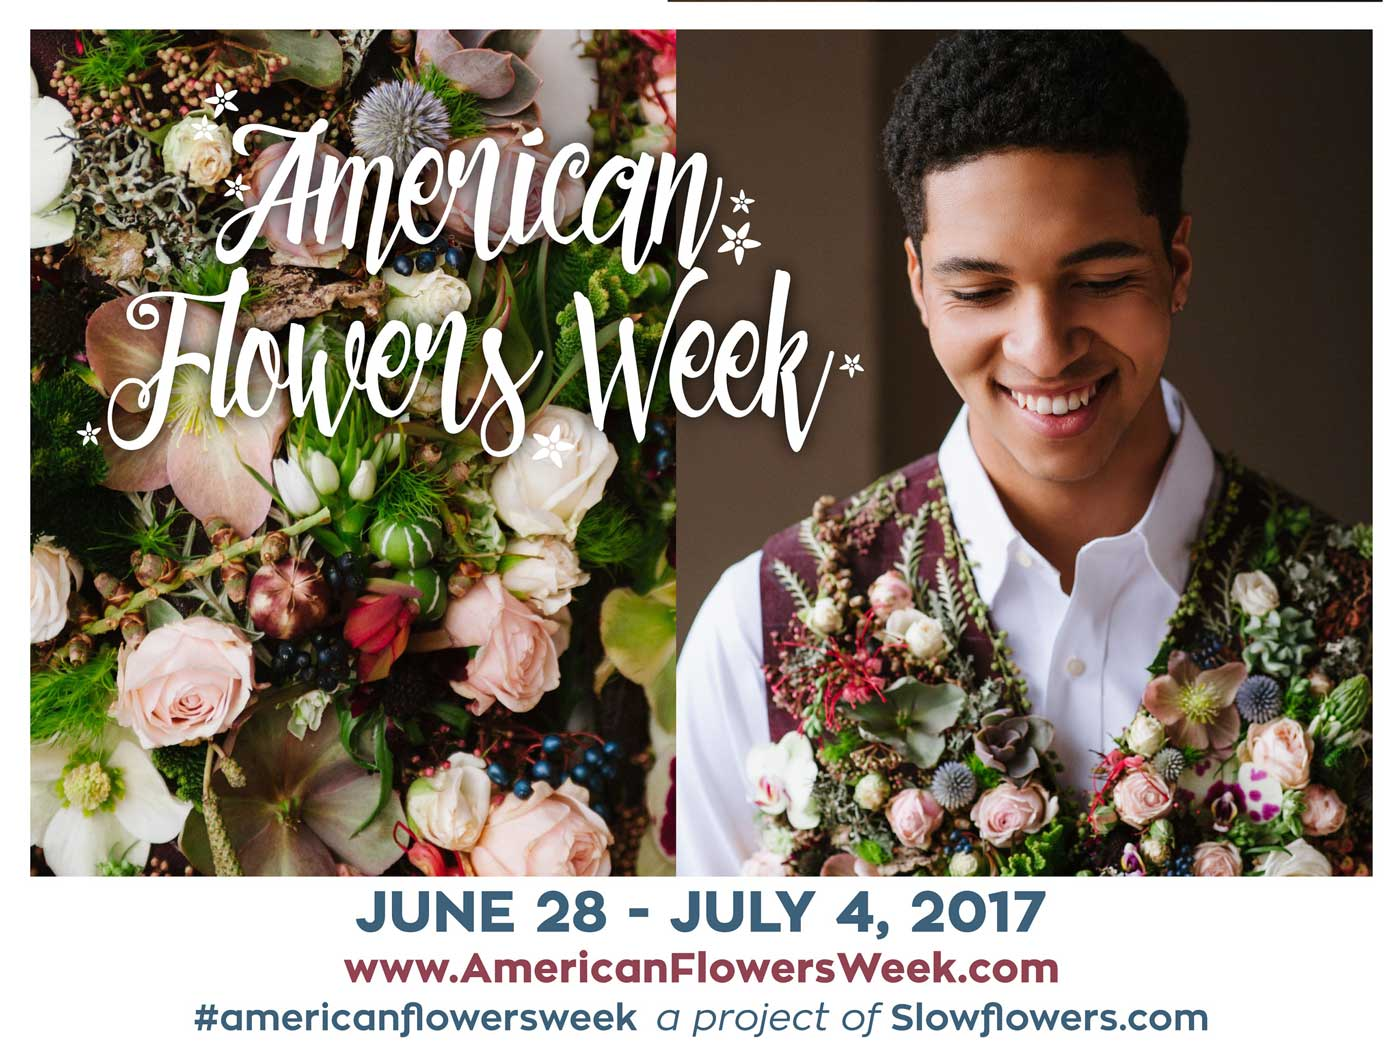 American Flowers Week: Make a Flower Arrangement and Join the Fun